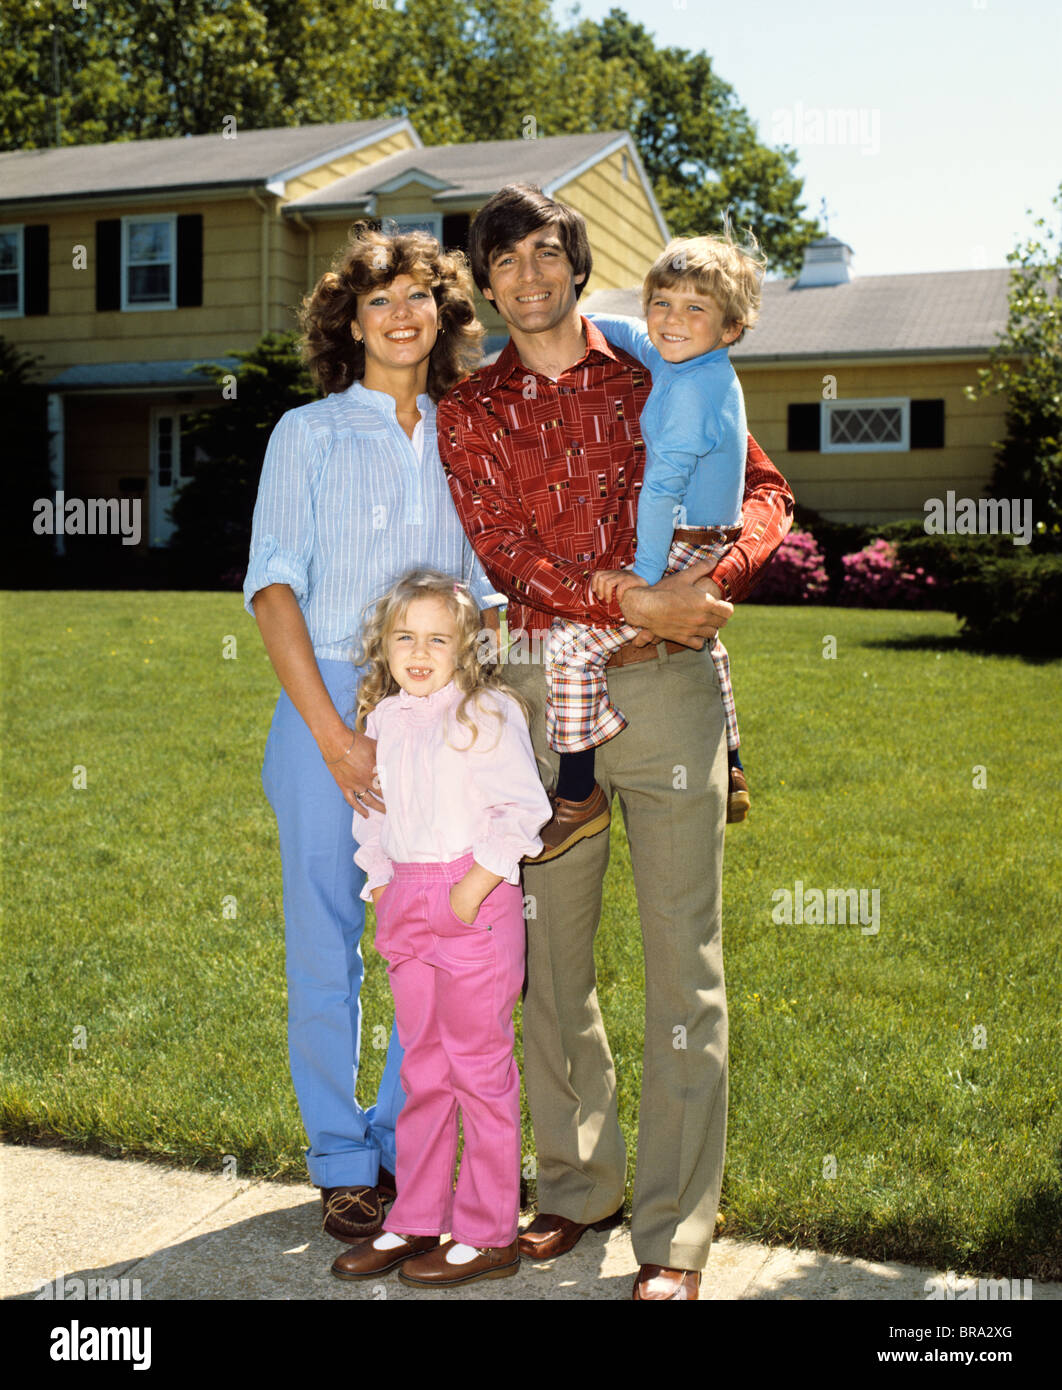 1980s FAMILY IN FRONT OF HOME MOTHER FATHER BOY GIRL PORTRAIT FRONT LAWN RETRO - Stock Image